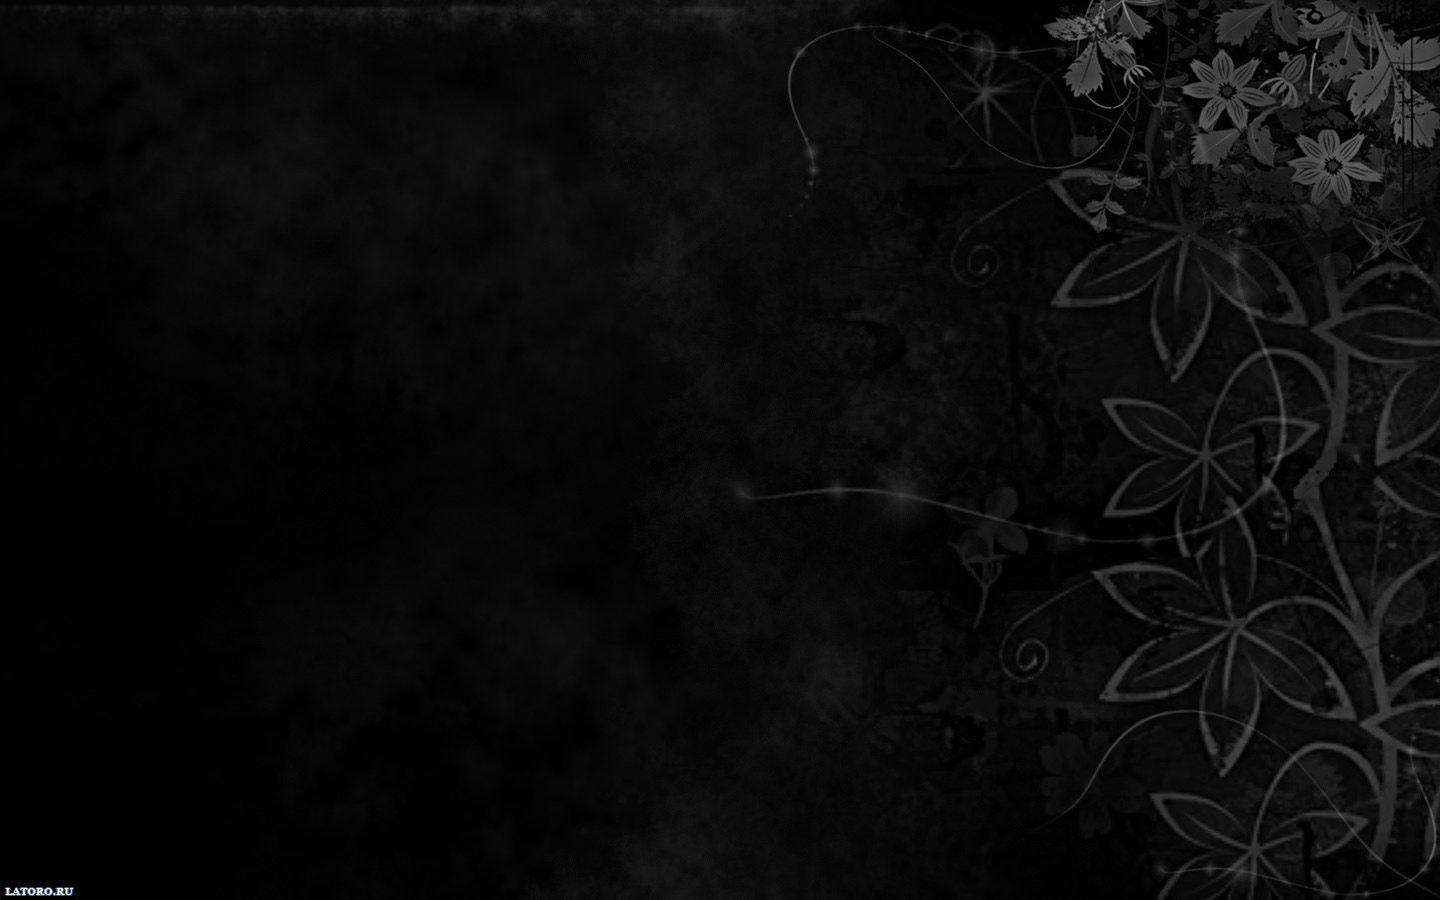 Black Aesthetic Computer Wallpapers Top Free Black Aesthetic Computer Backgrounds Wallpaperaccess